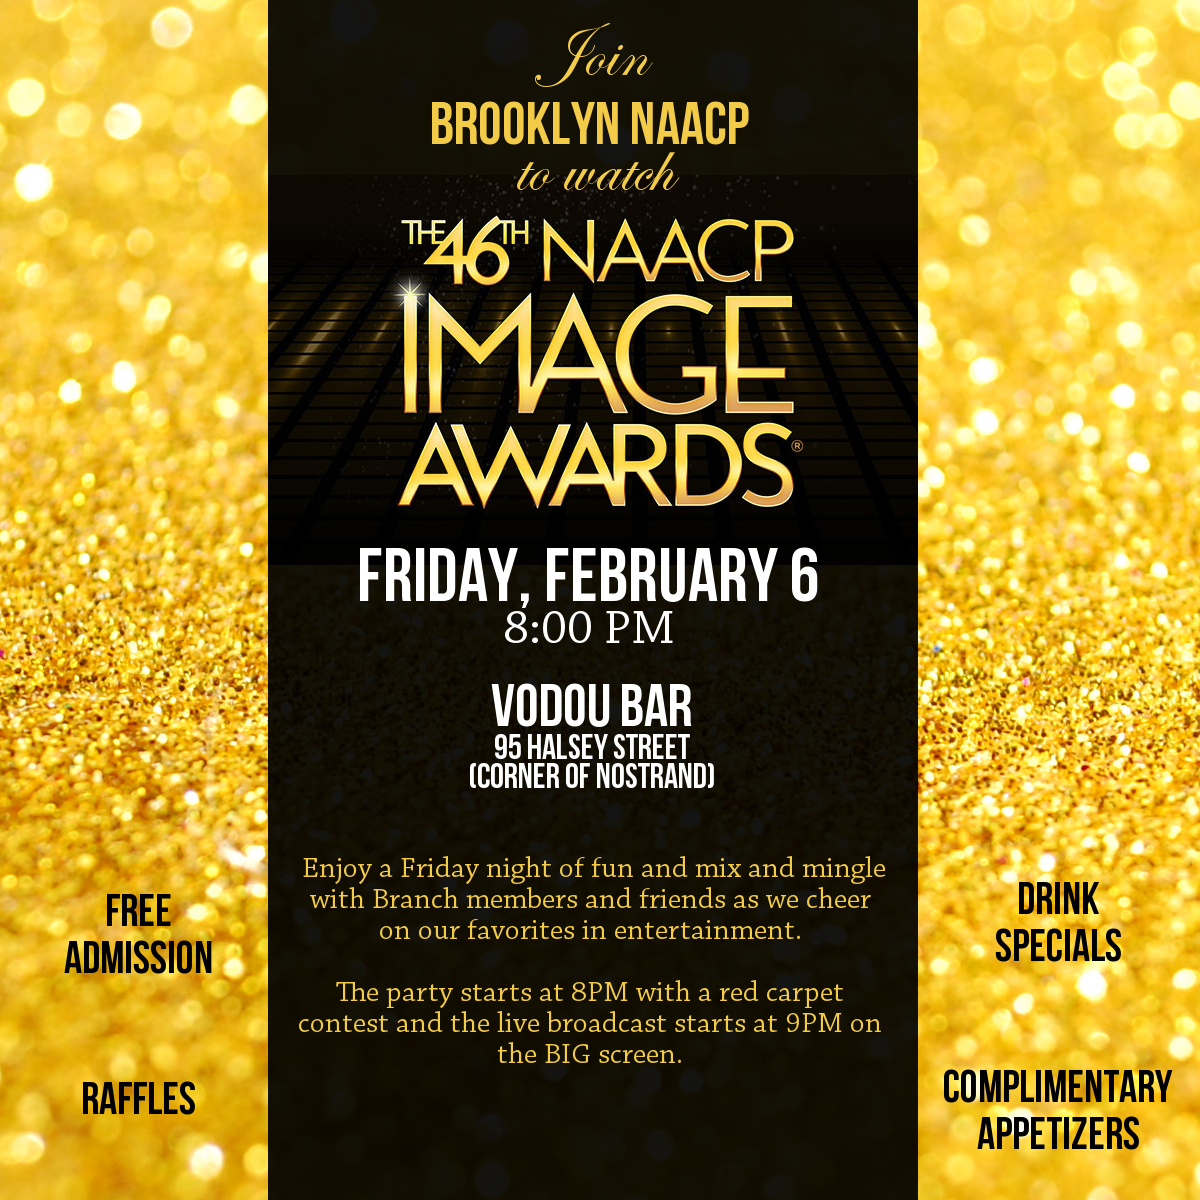 image_awards_watch_party_website.png